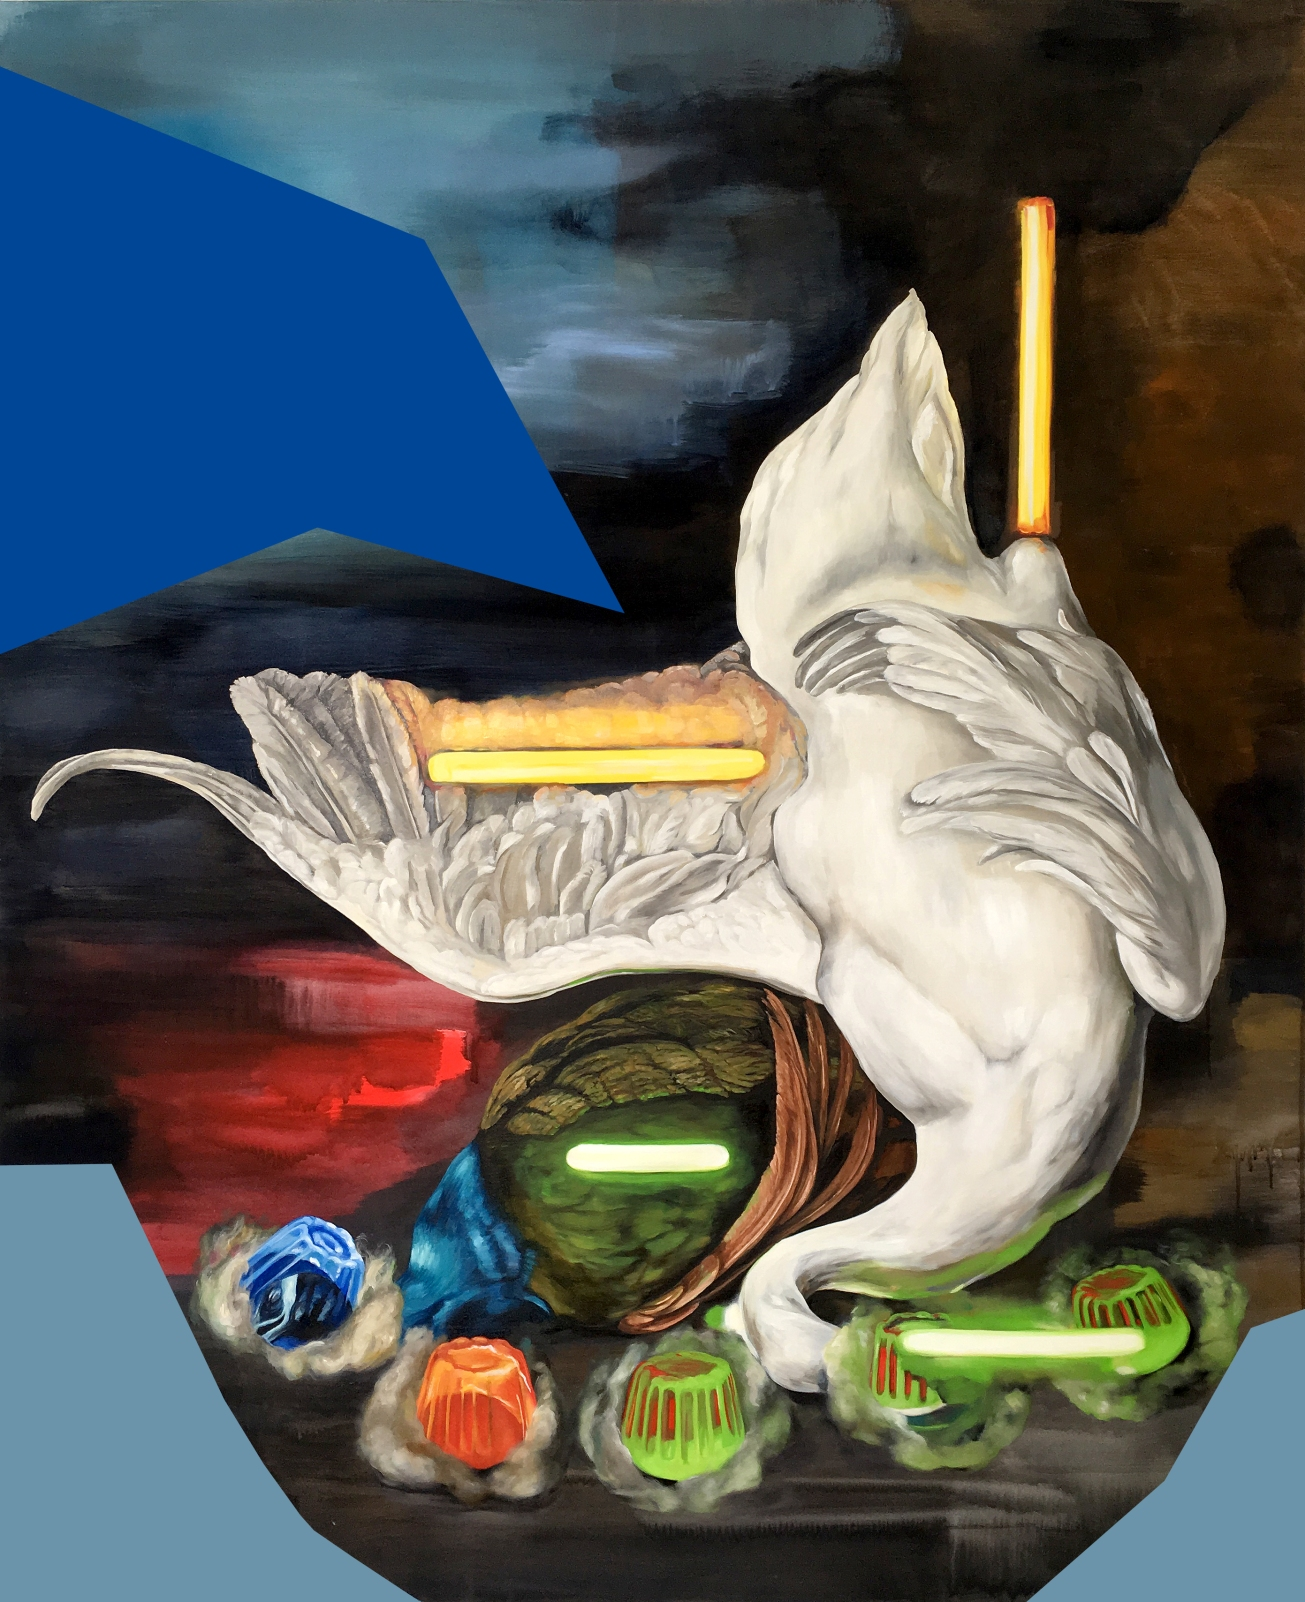 Monika Behrens, Dead Swan (after Weenix), 2016, oil and acrylic on canvas, 168 x 138 cm.jpg